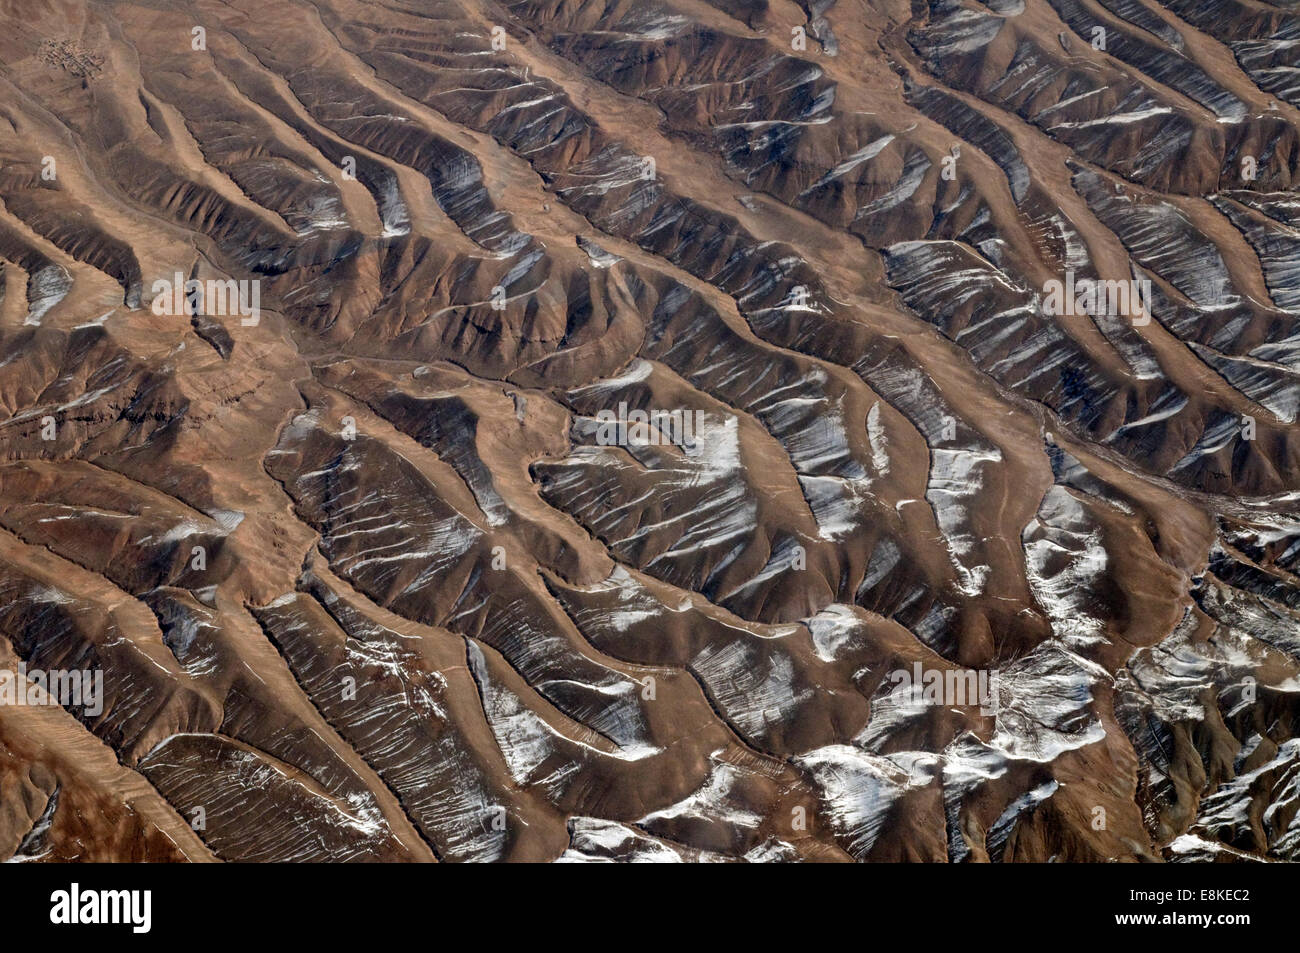 Aerial of mountainous snow clad rock formations in a barren Turkmenistan mountainous region. Snow clad rugged range - Stock Image